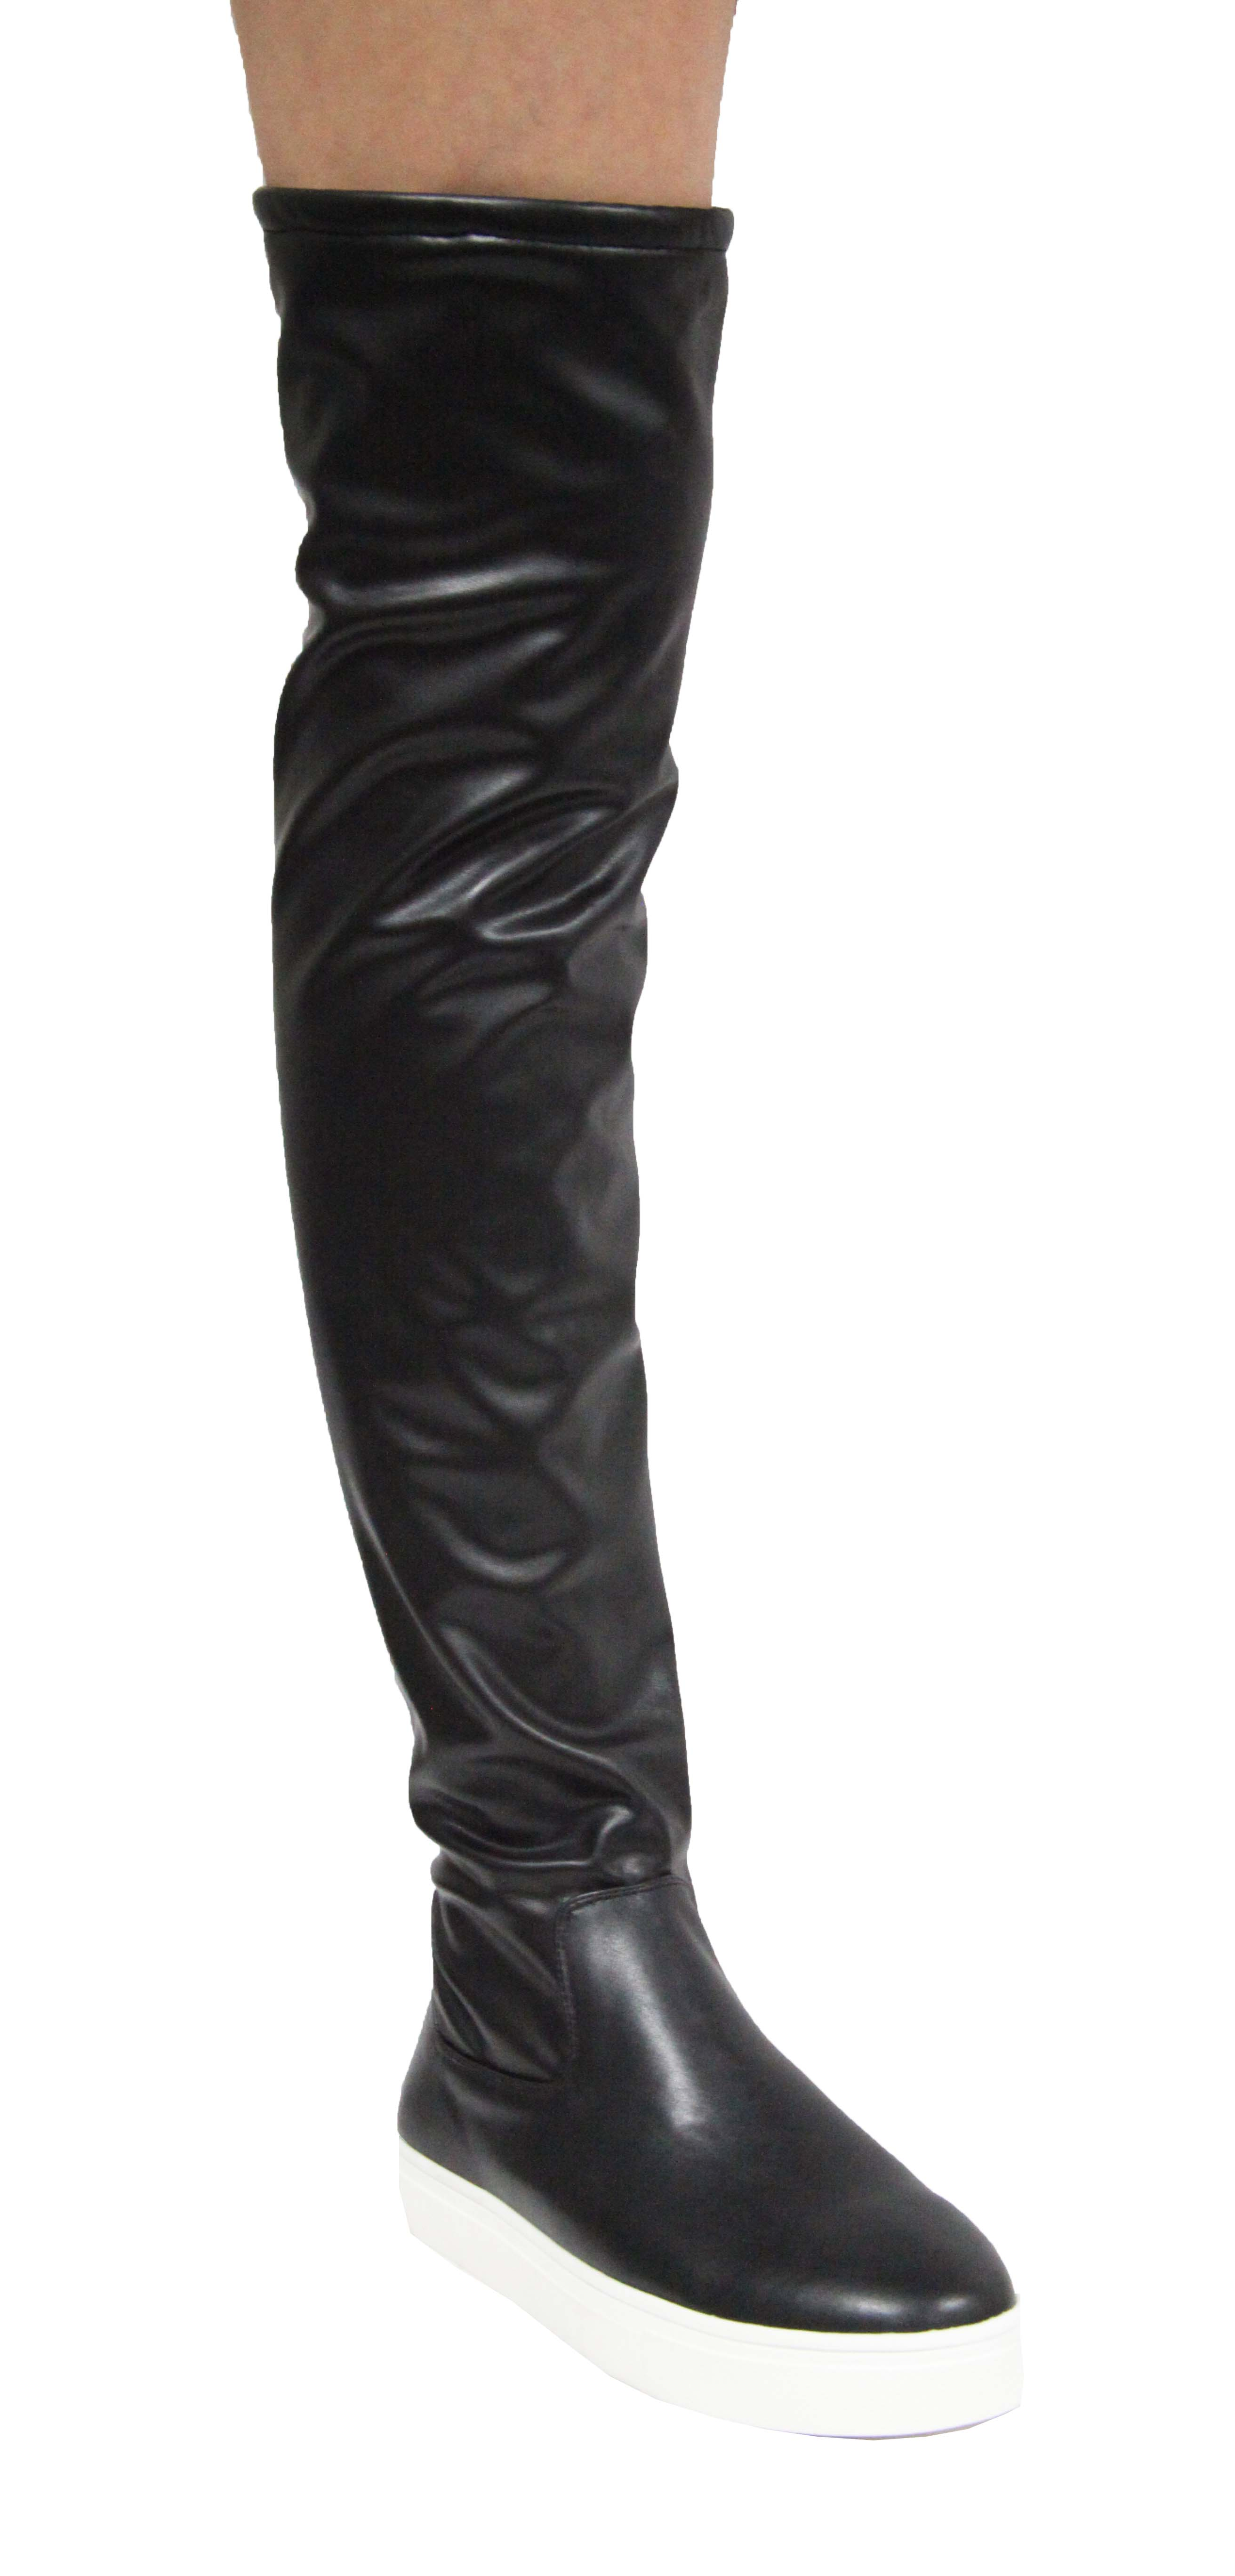 Cape-Robbin-Adelaide-21-Black-Leather-Sneaker-Bottom-Over-Knee-Fitted-Boots thumbnail 3